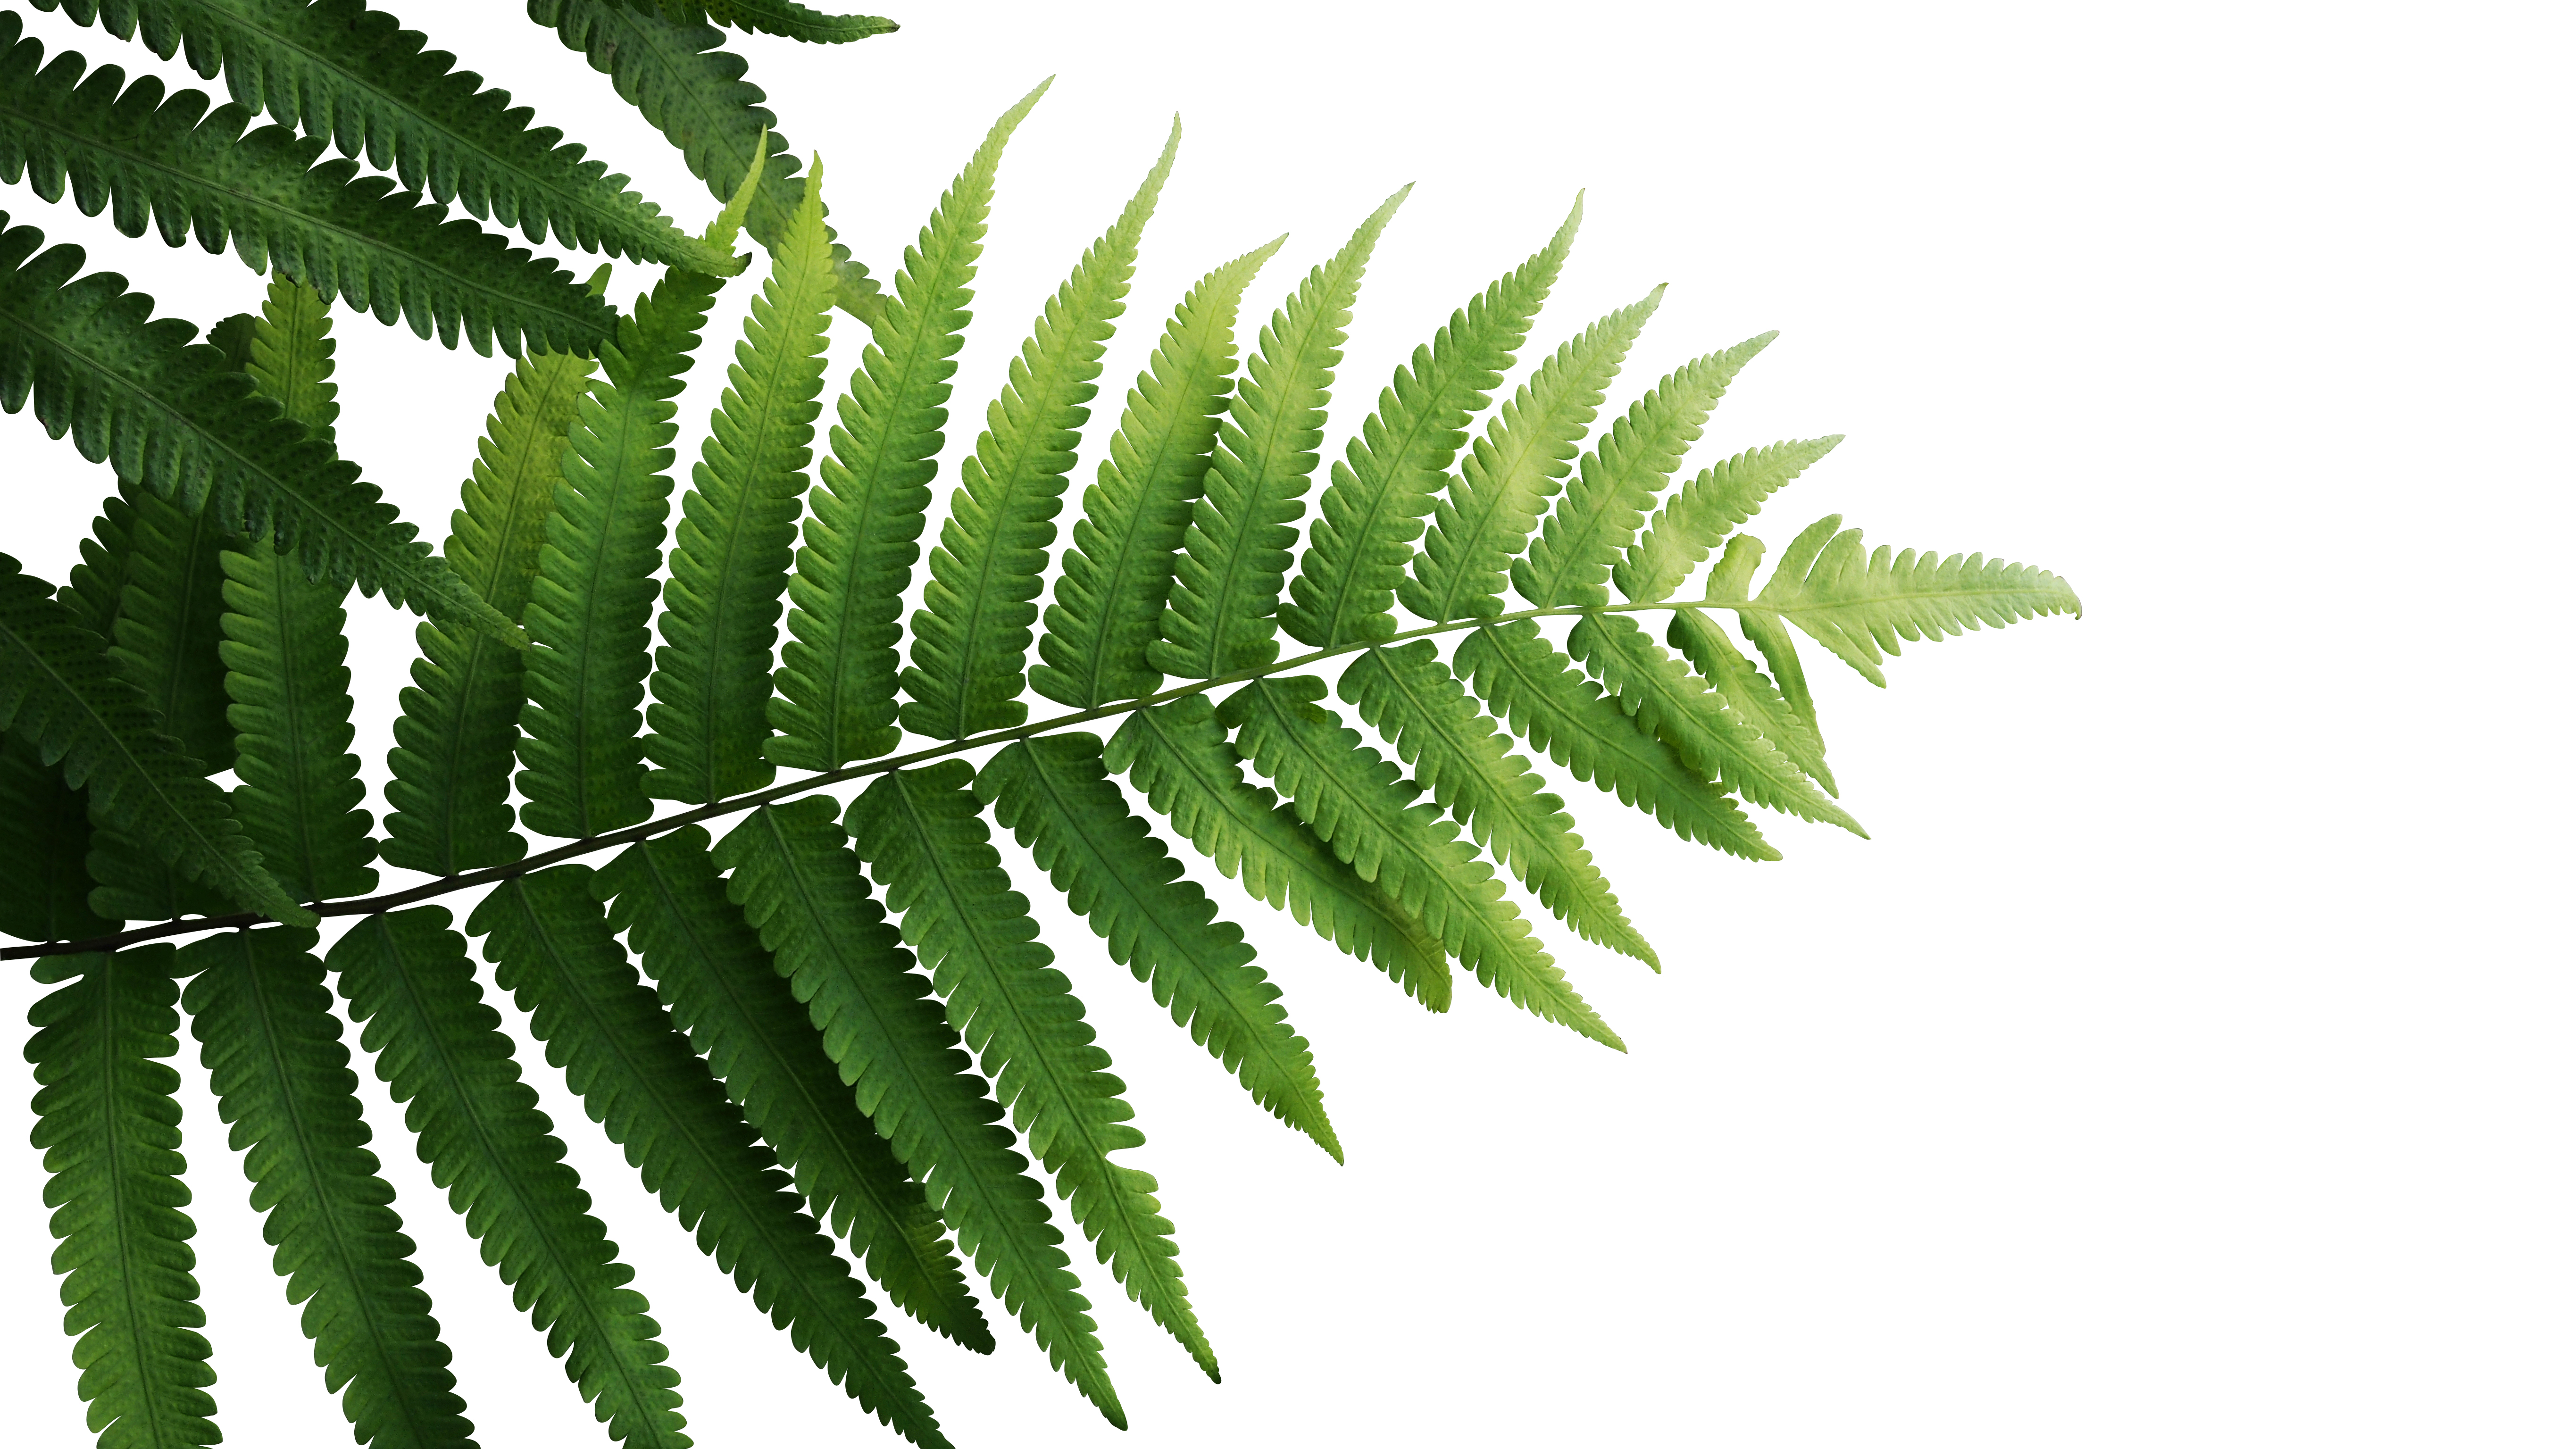 How To Take Care Of A Lemon Buttons Fern Nephrolepis Cordifolia